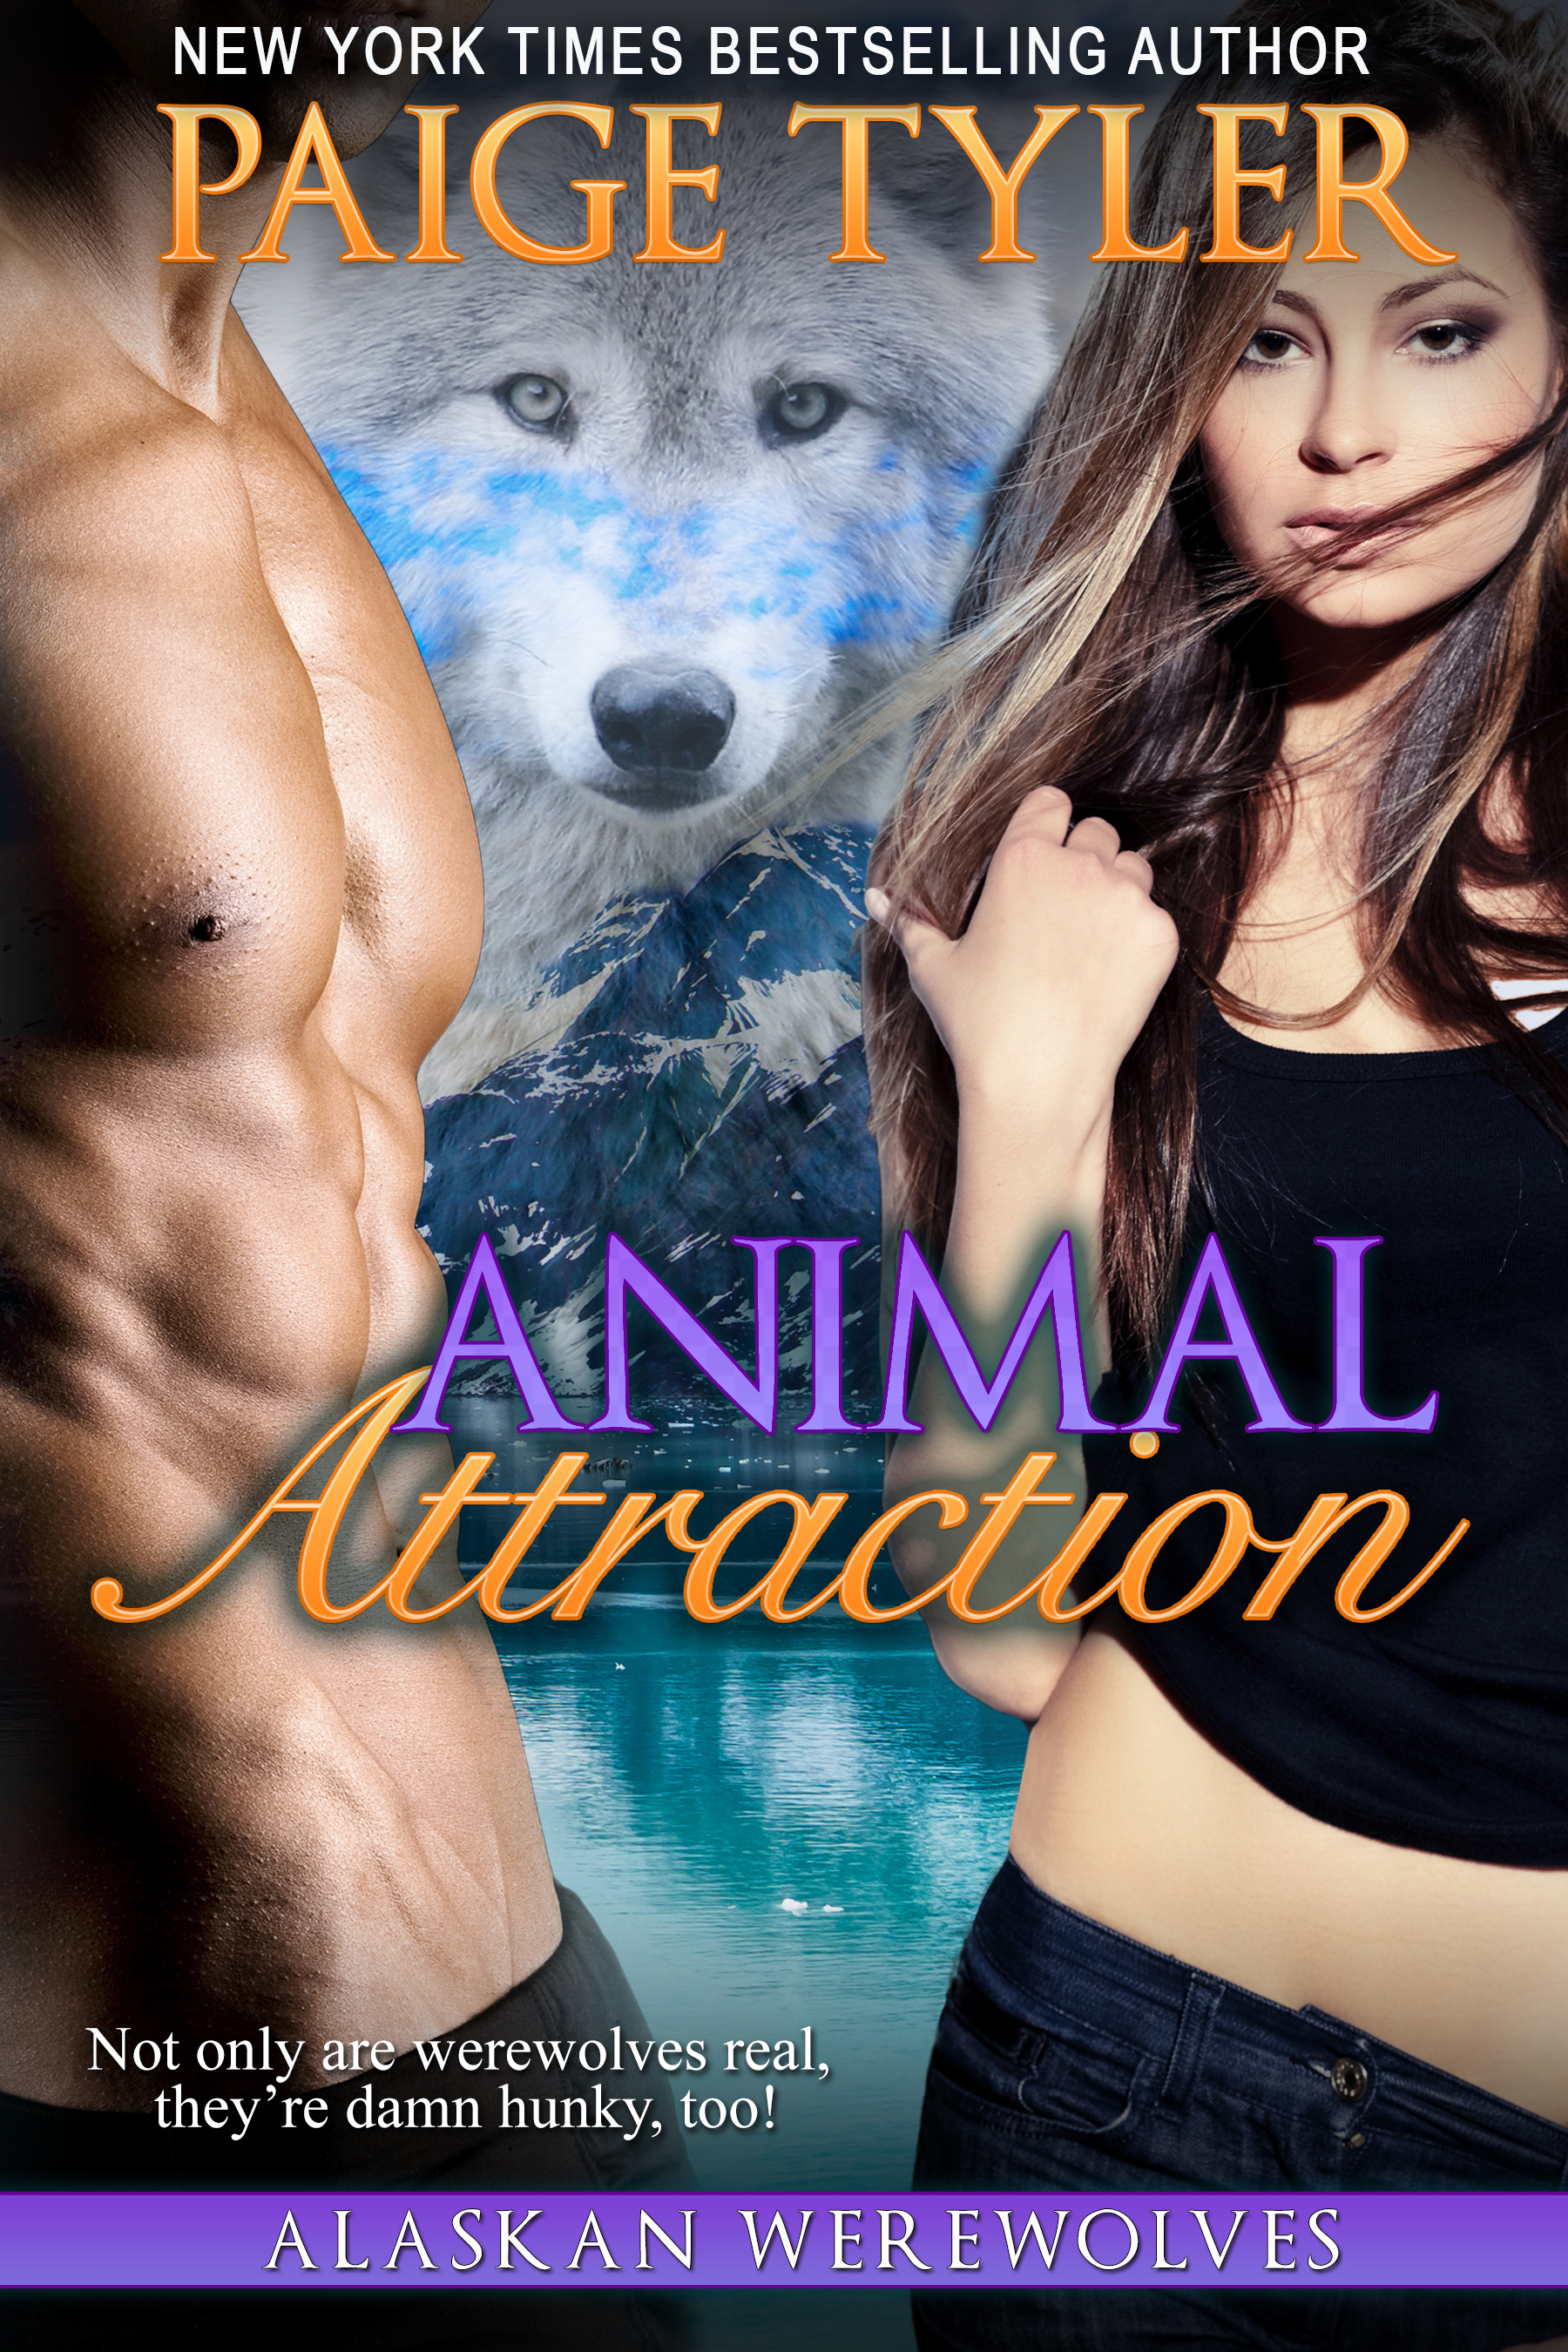 6 – PaigeTyler_AnimalAttraction_HR-NEW